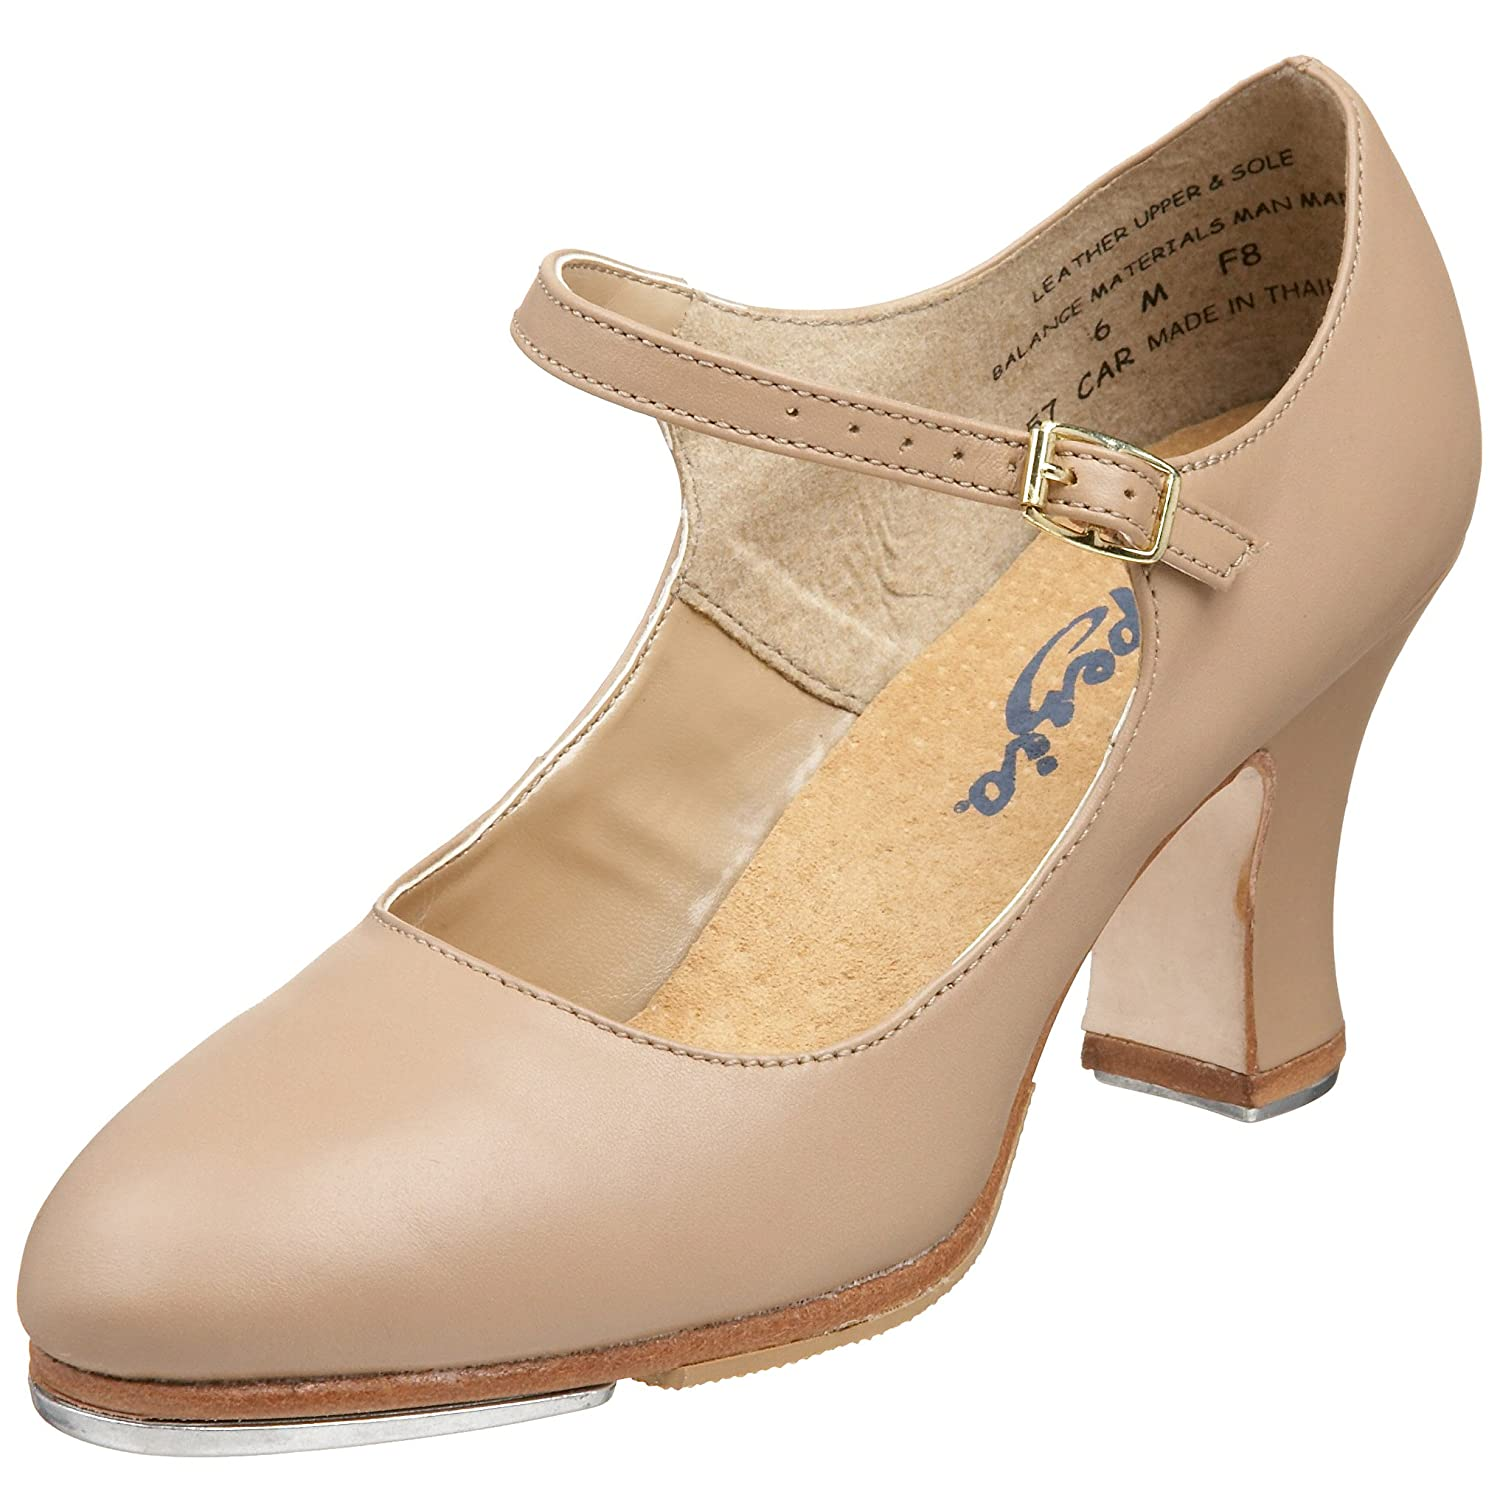 Retro Vintage Style Wide Shoes Capezio Womens 657 Manhattan Xtreme Tap Shoe $82.95 AT vintagedancer.com